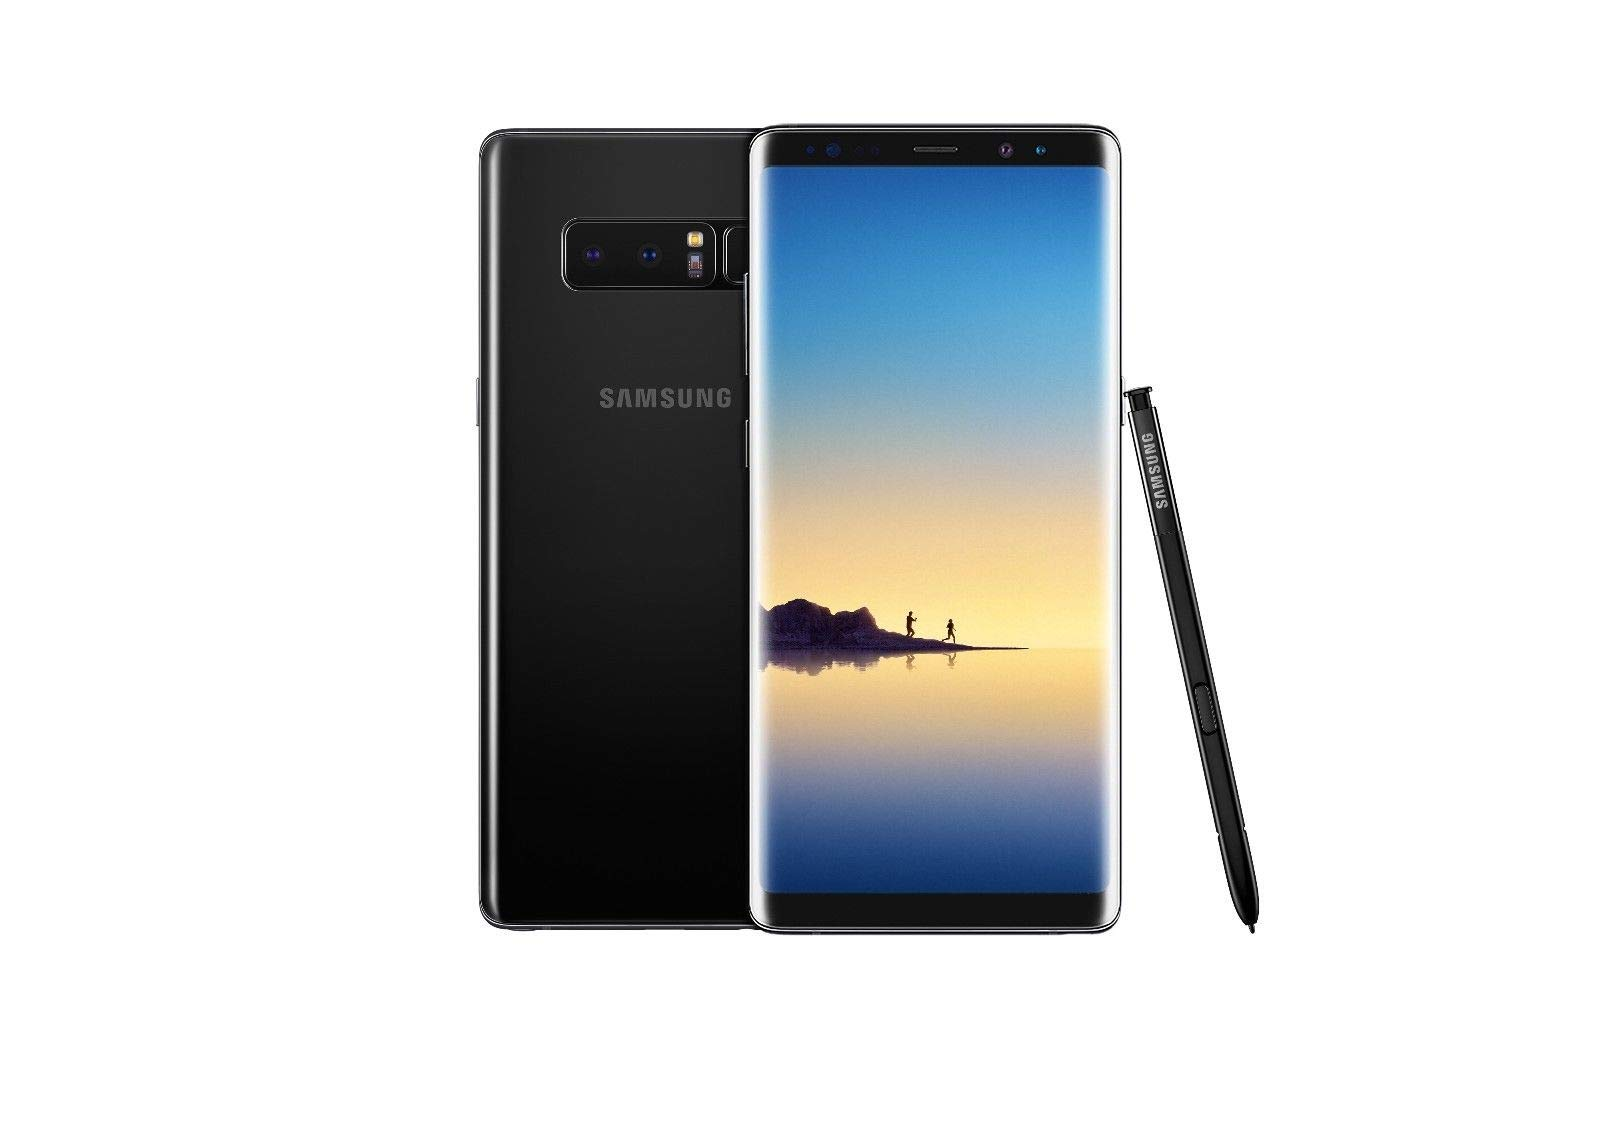 Samsung Galaxy Note 8 N950U 64GB Unlocked GSM 4G LTE Android Smartphone w/Dual 12 MegaPixel Camera (Renewed) (Midnight Black) by Samsung